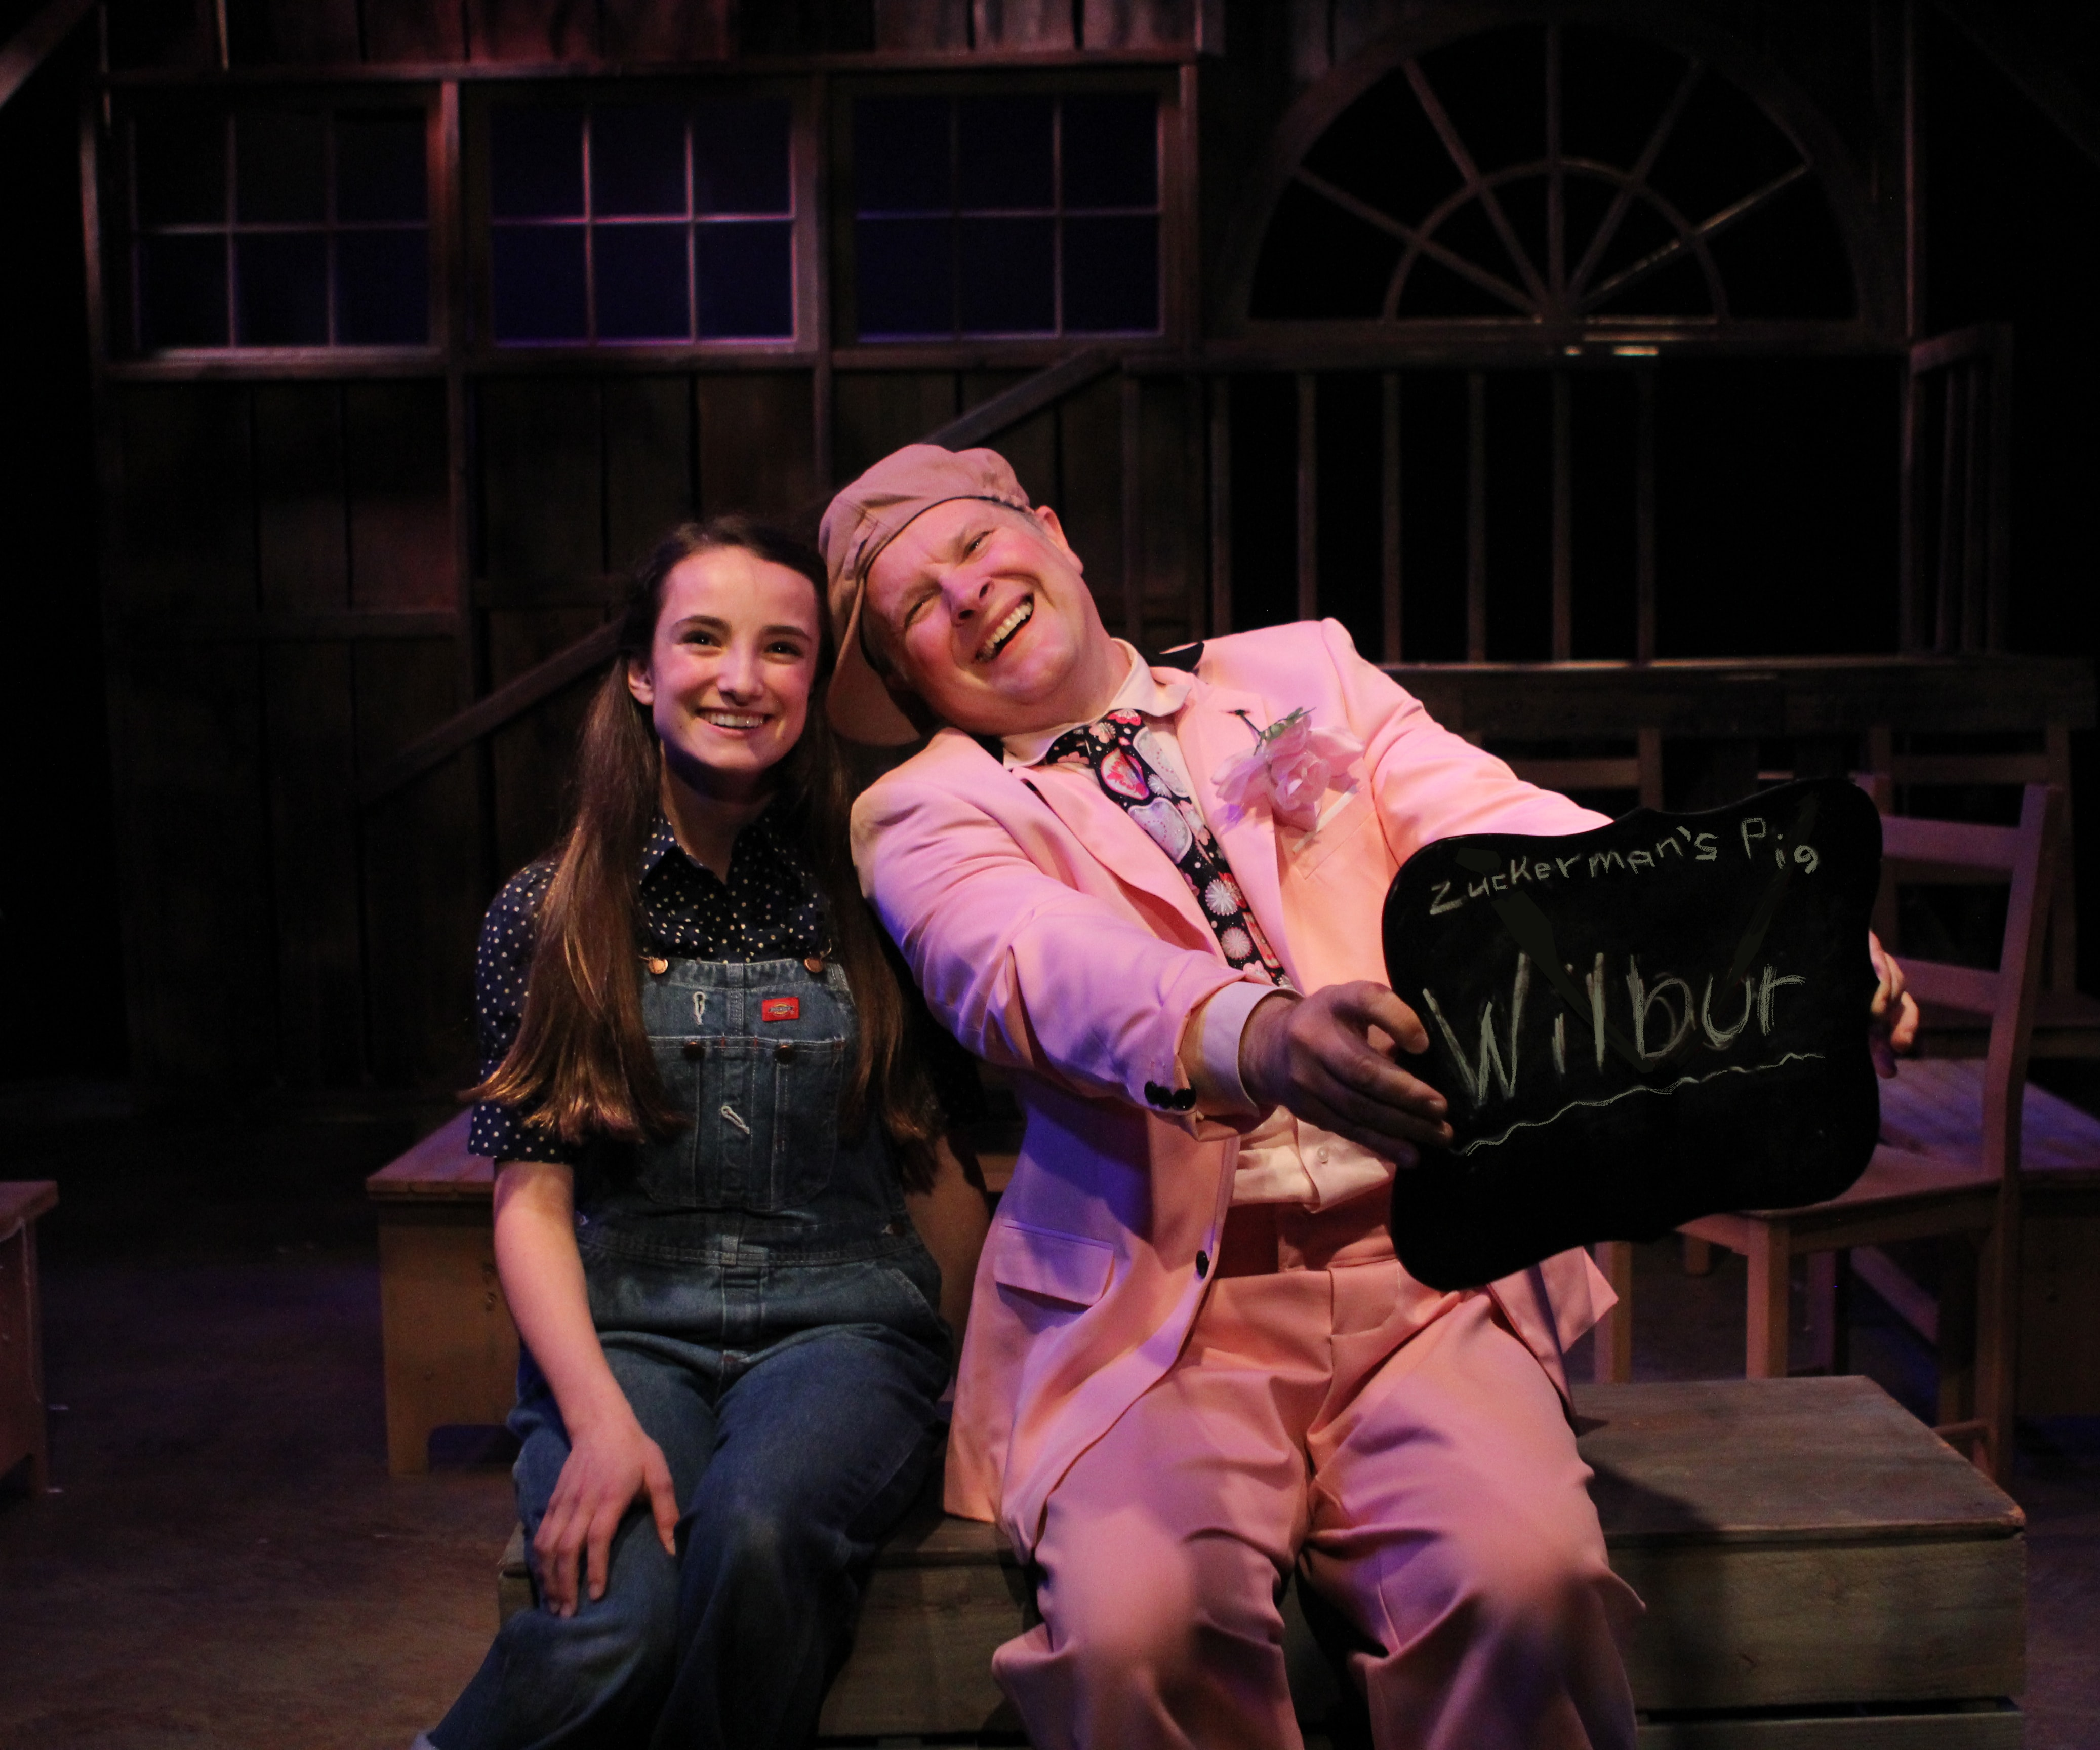 Sophia Manicone (Fern) and Will Stevenson (Wilbur) in Charlotte's Web, now playing at Creative Cauldron. Photo by Noah Taylor.